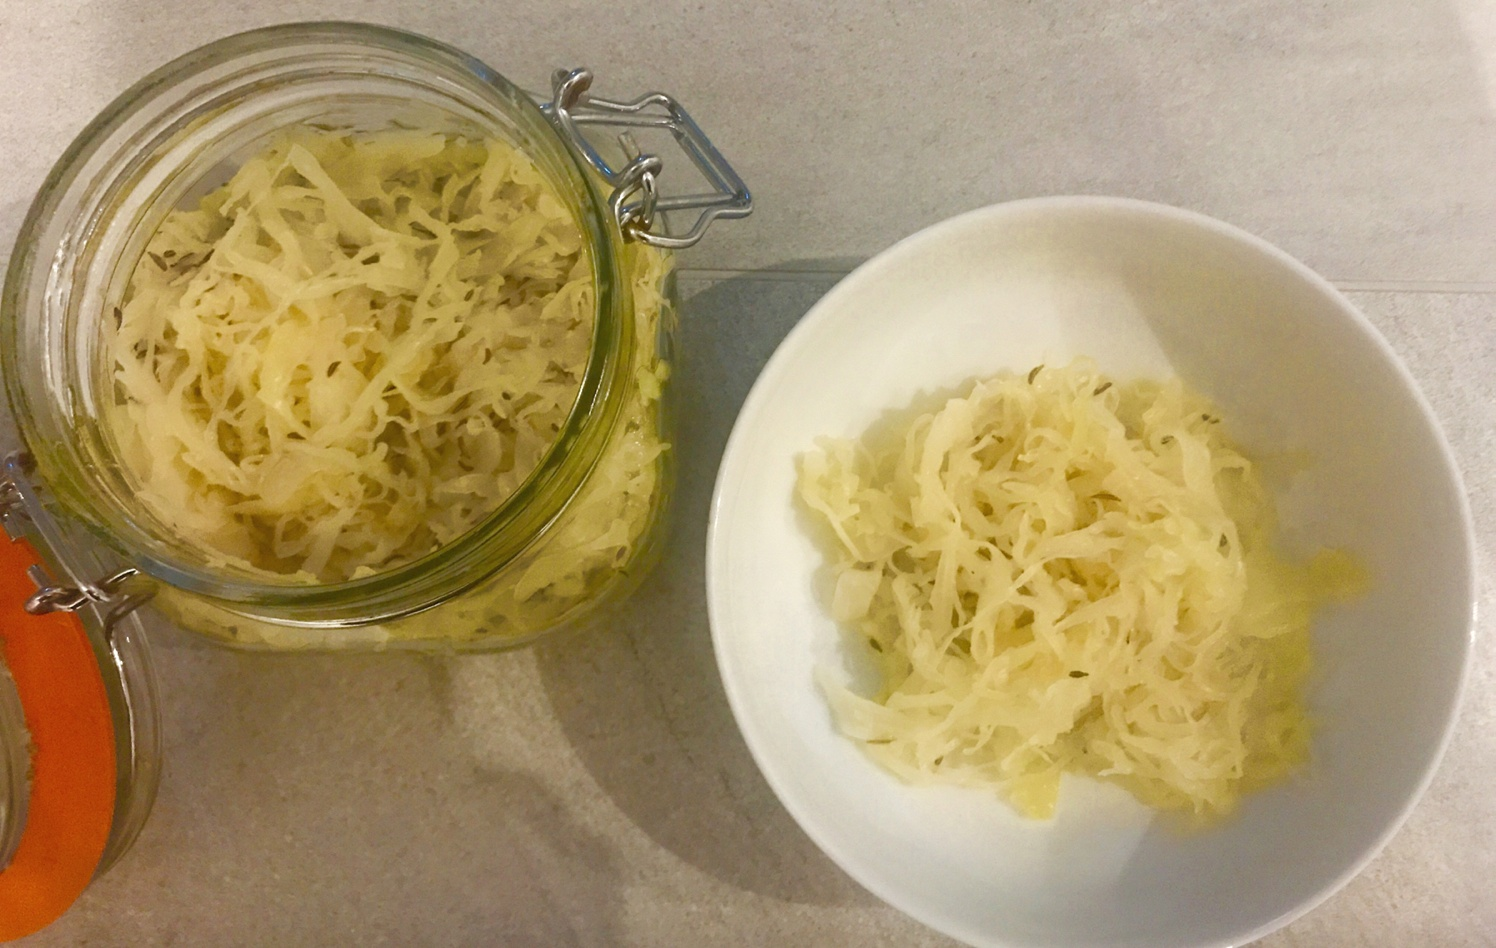 SugarDoctor Recipe Sauerkraut in a glass jar and in a bowl